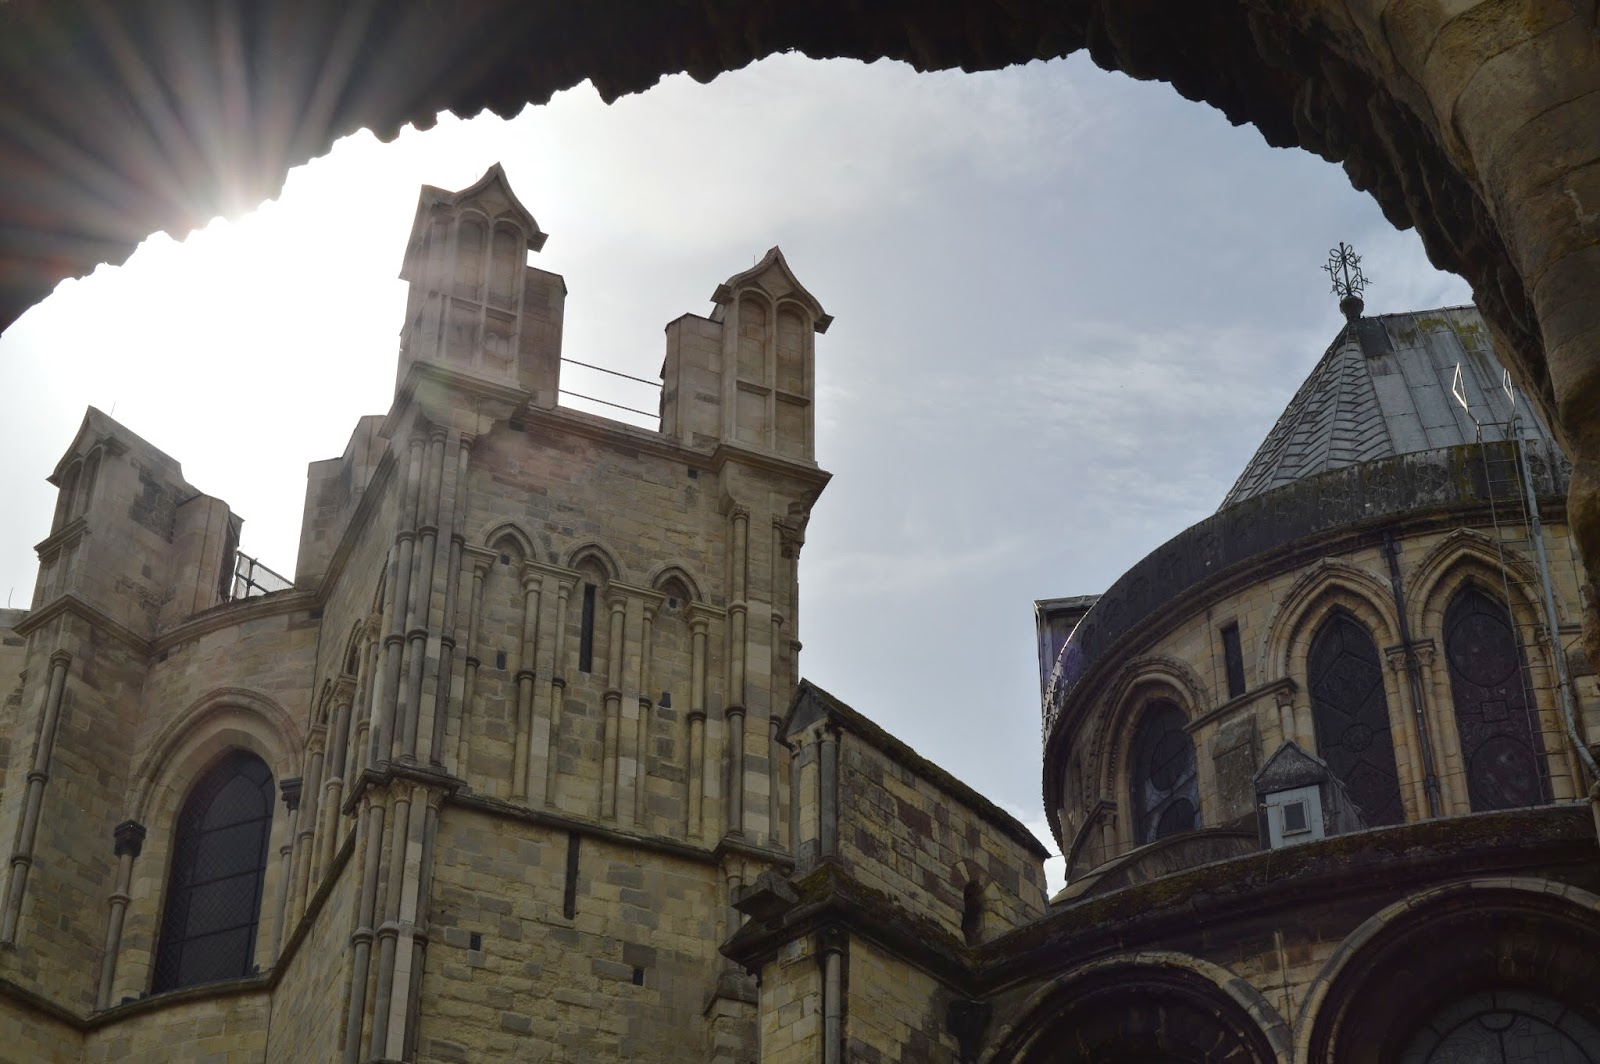 Canterbury Cathedral, Thomas Becket, martyr, Saint Augustine, worship, church, visit, Kent, day trip, religious, old, medieval, stained glass, impressive, big, history, historical, spires, decorated, photo, photograph, arches, monastery, Christian, ruin